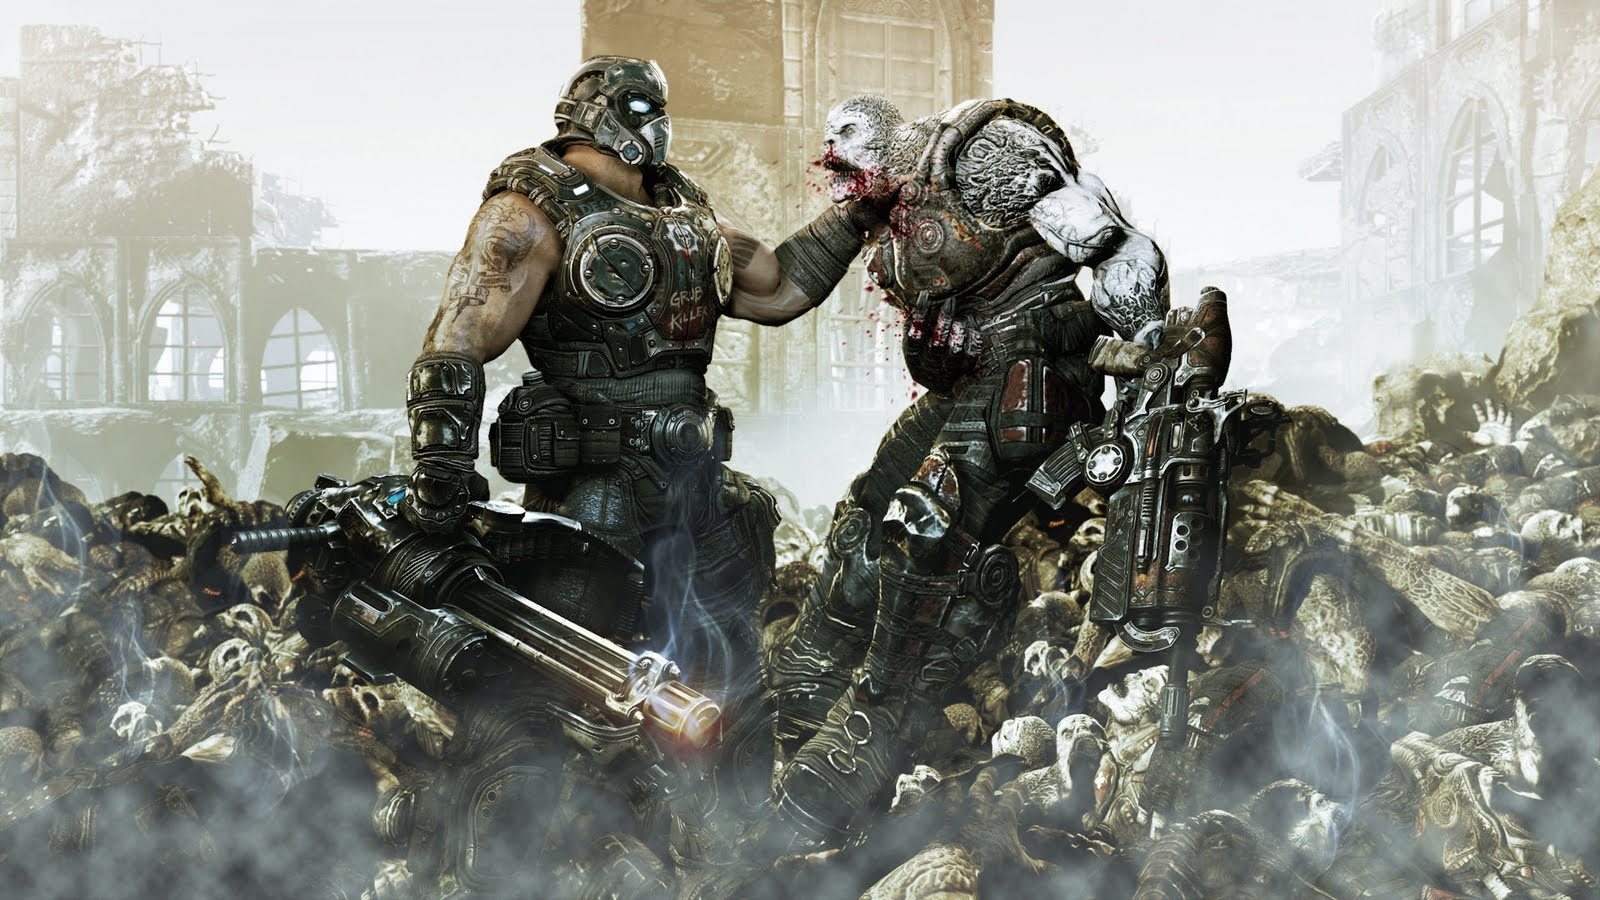 Gears of War HD & Widescreen Wallpaper 0.99314241723928